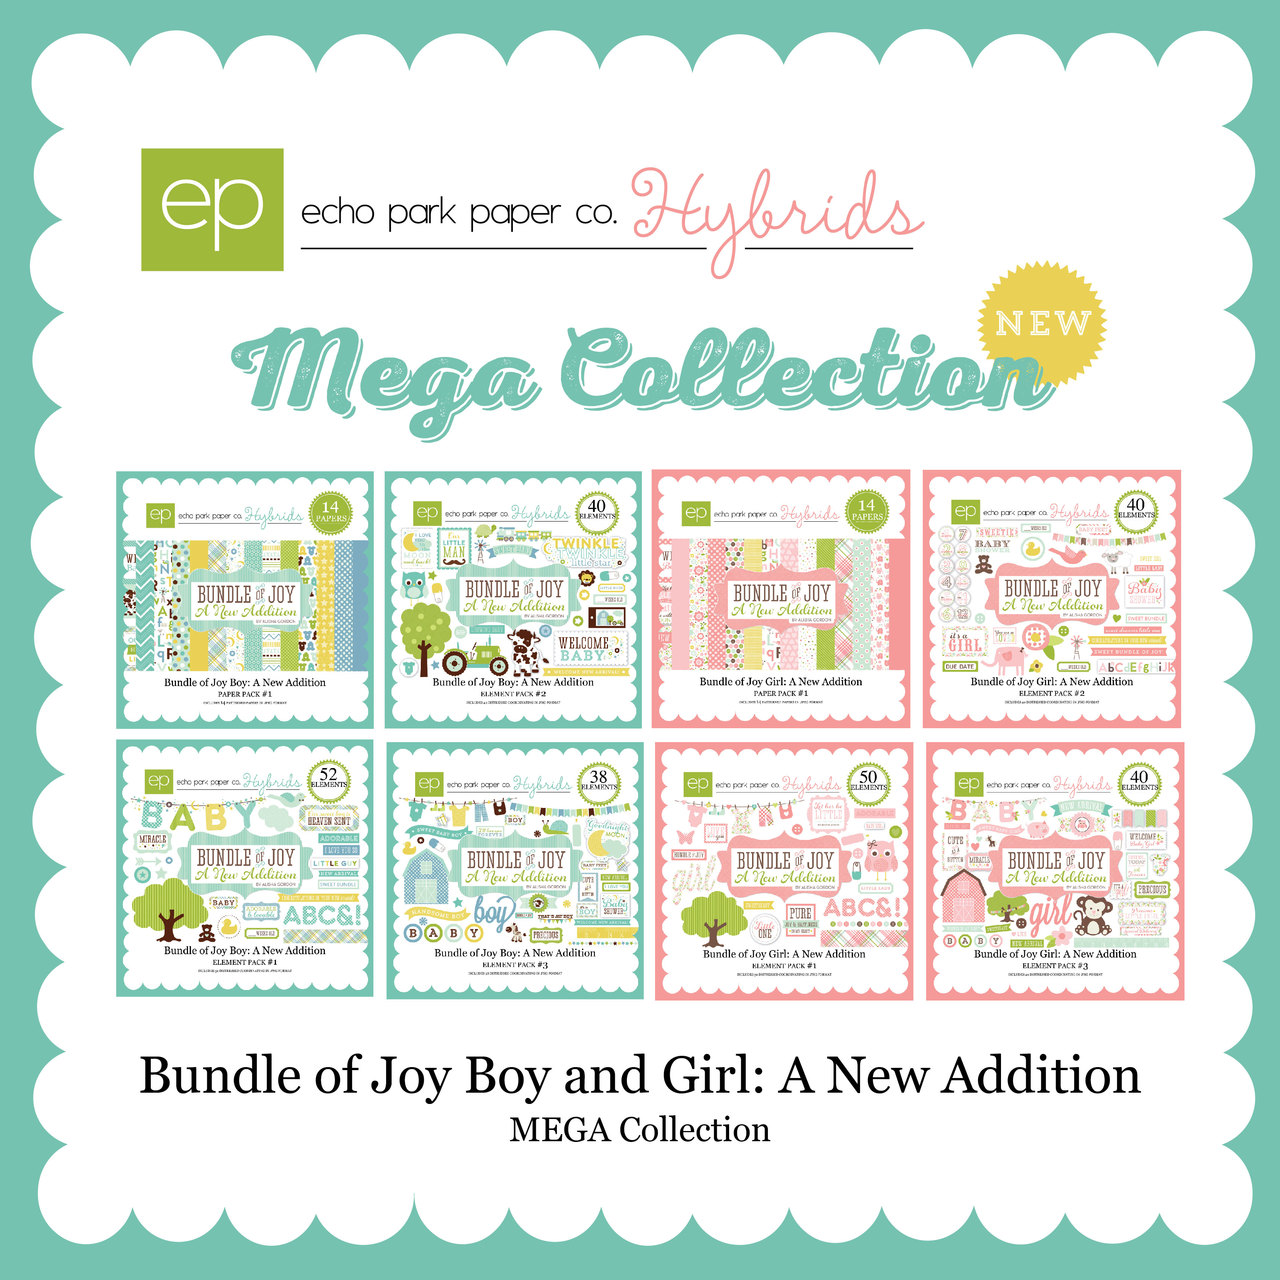 Bundle of Joy Boy: A New Addition Mega Collection